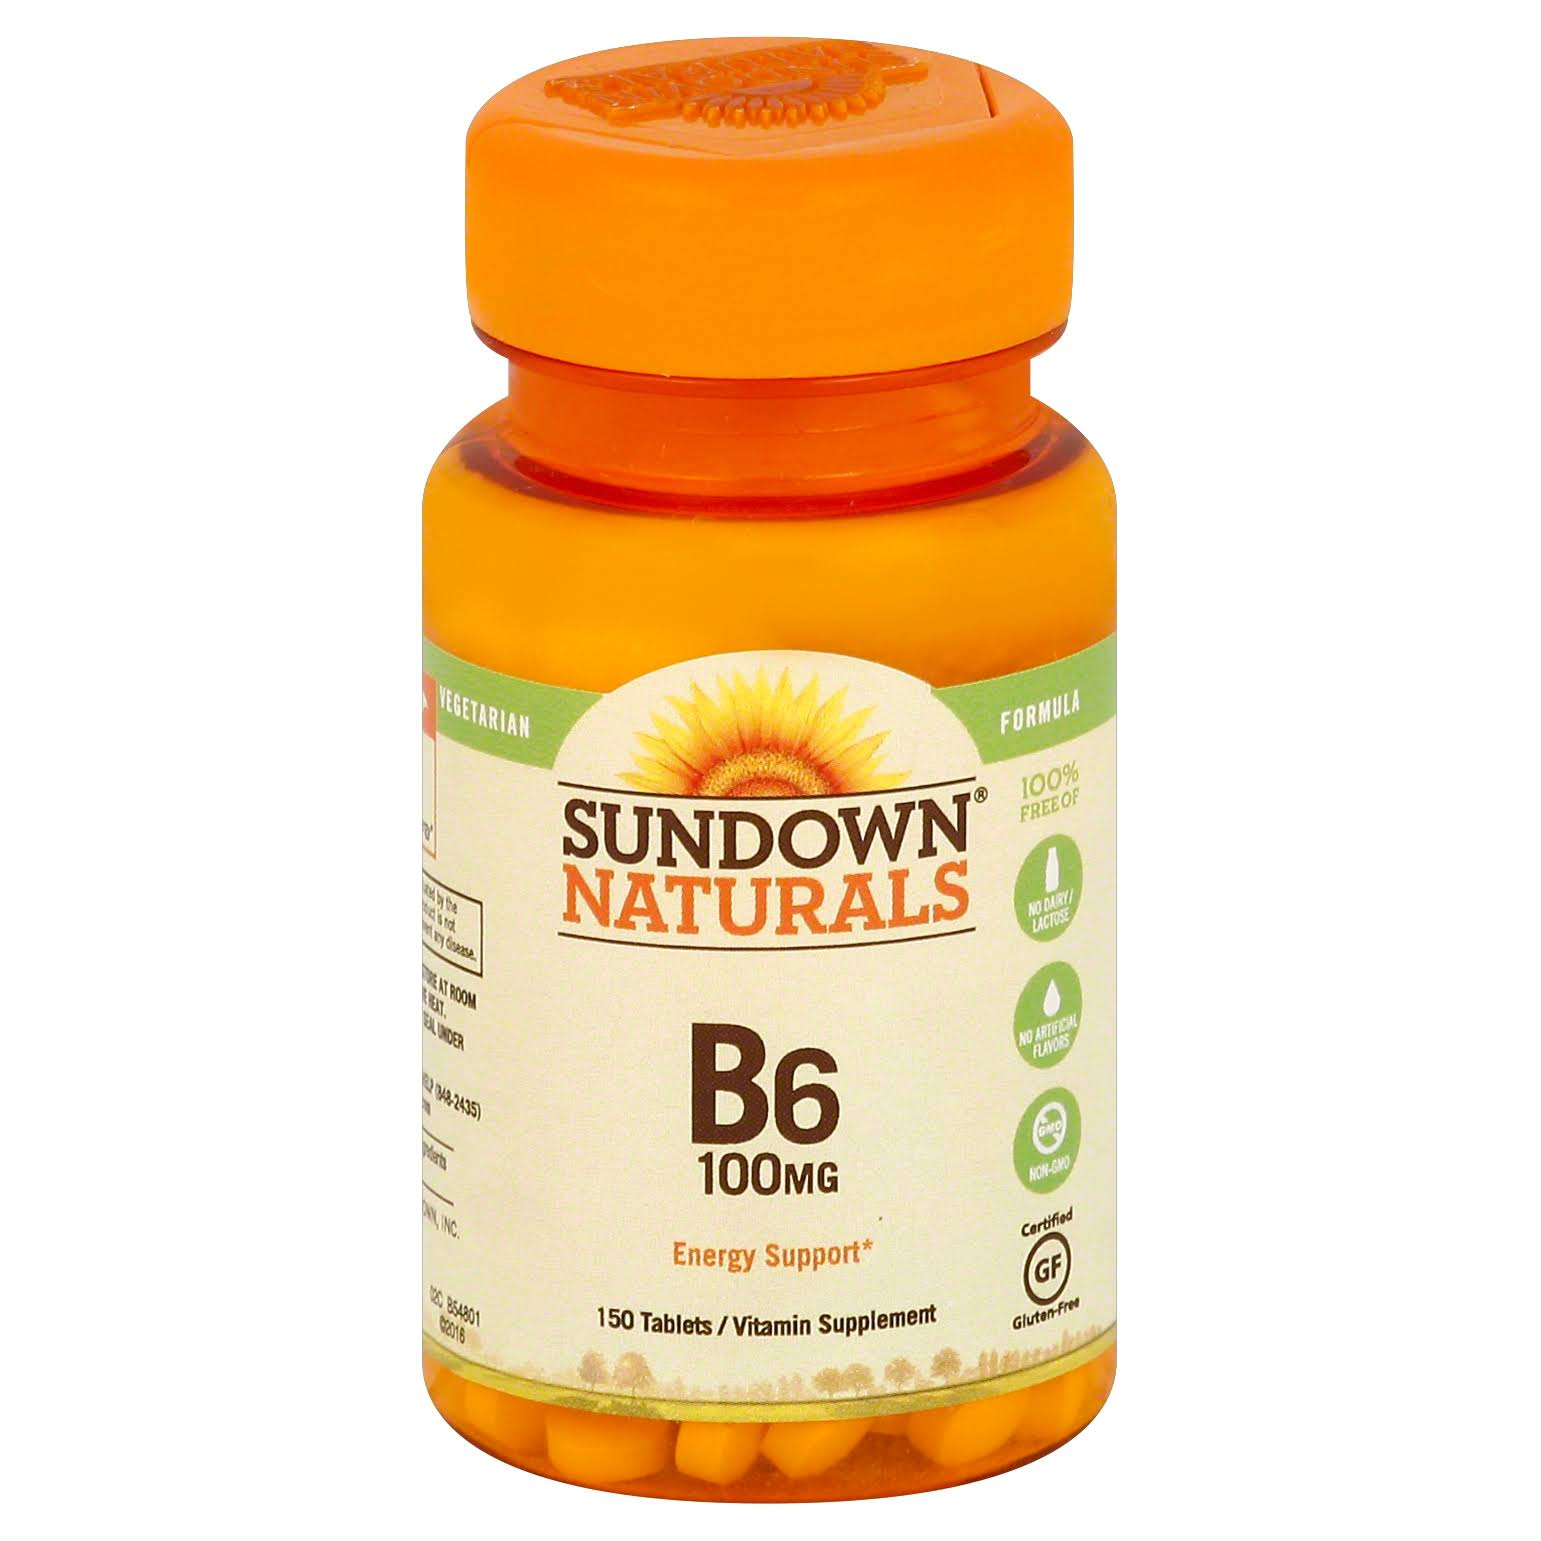 Sundown Naturals Vitamin B6 Supplement - 100mg, 150 Tablets